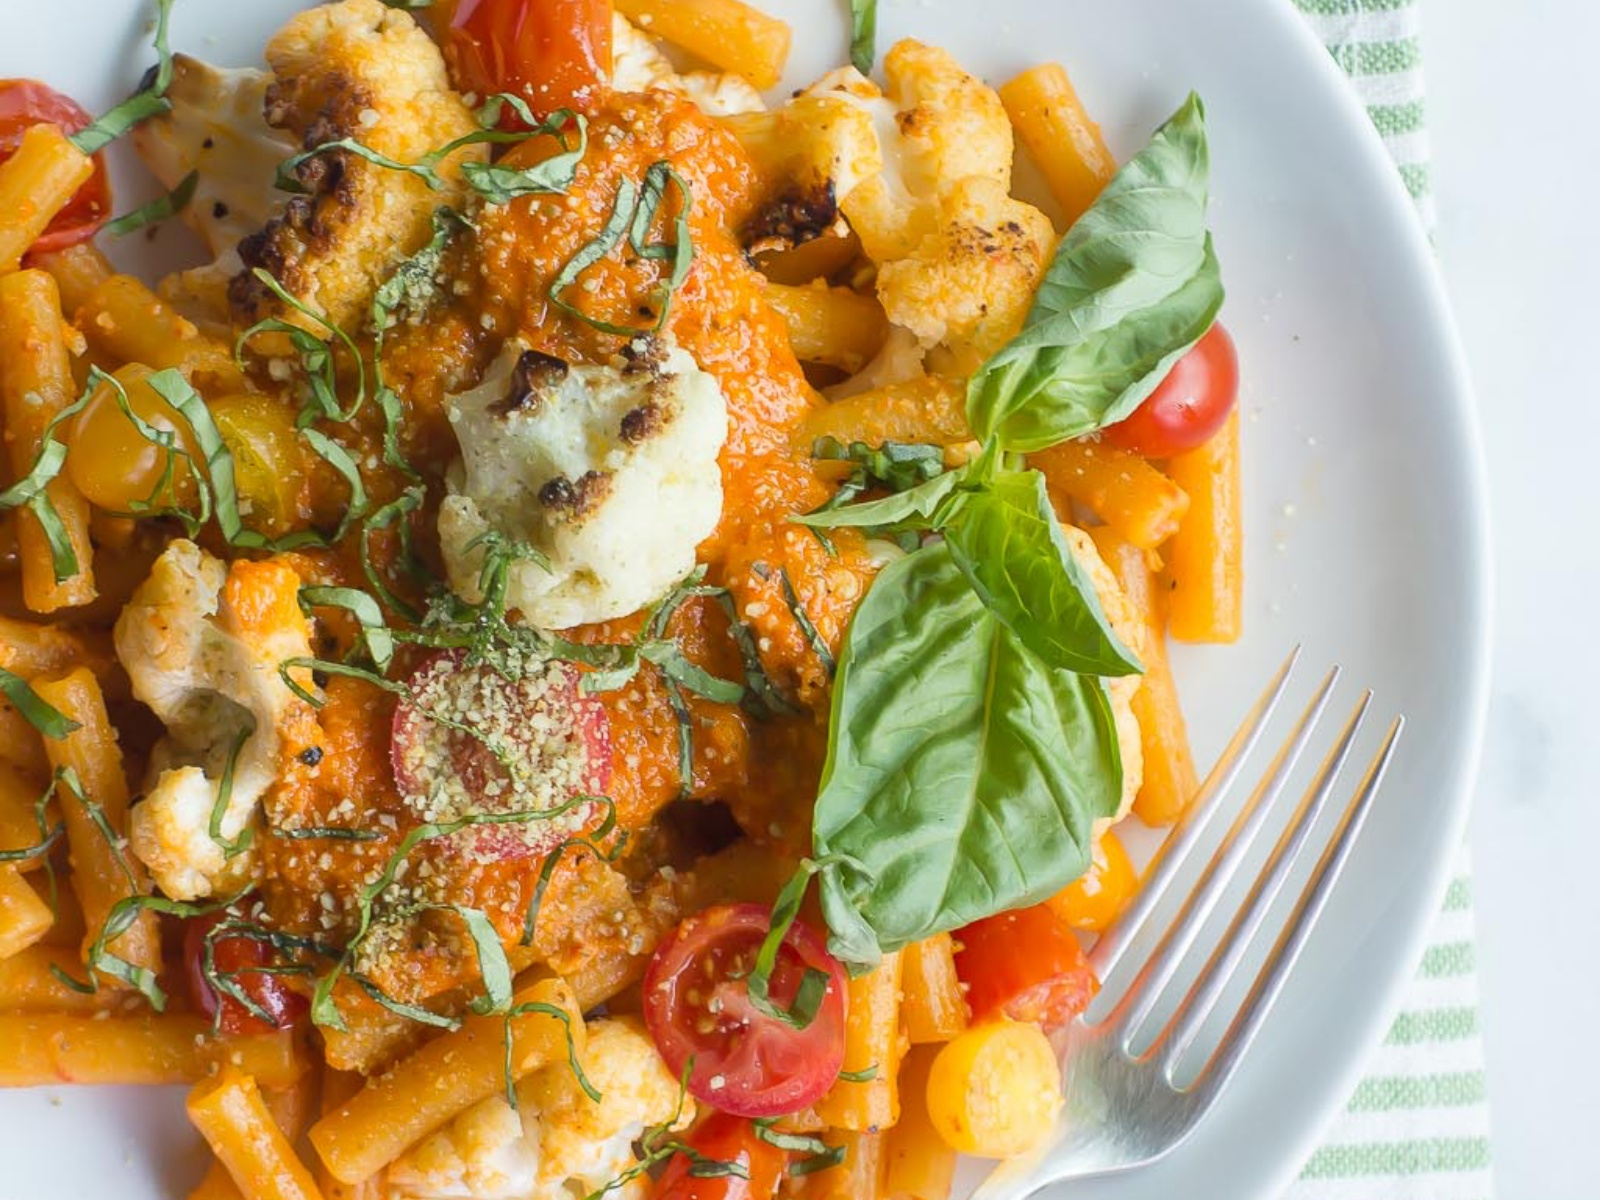 Vegan Penne with Roasted Red Pepper Pesto